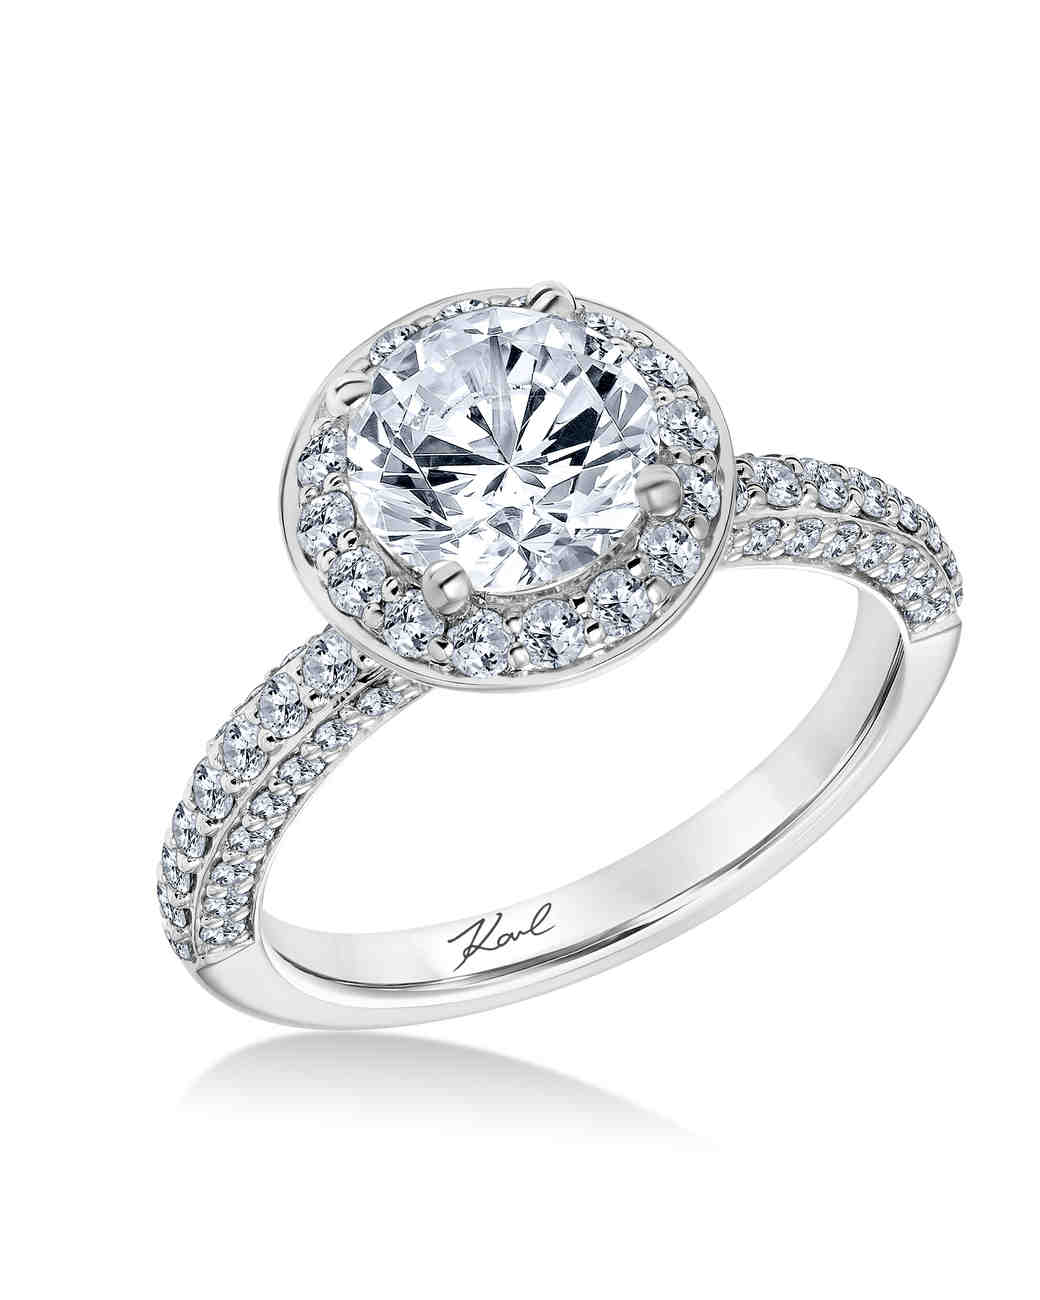 karl lagerfeld white gold engagement ring - White Gold Wedding Rings